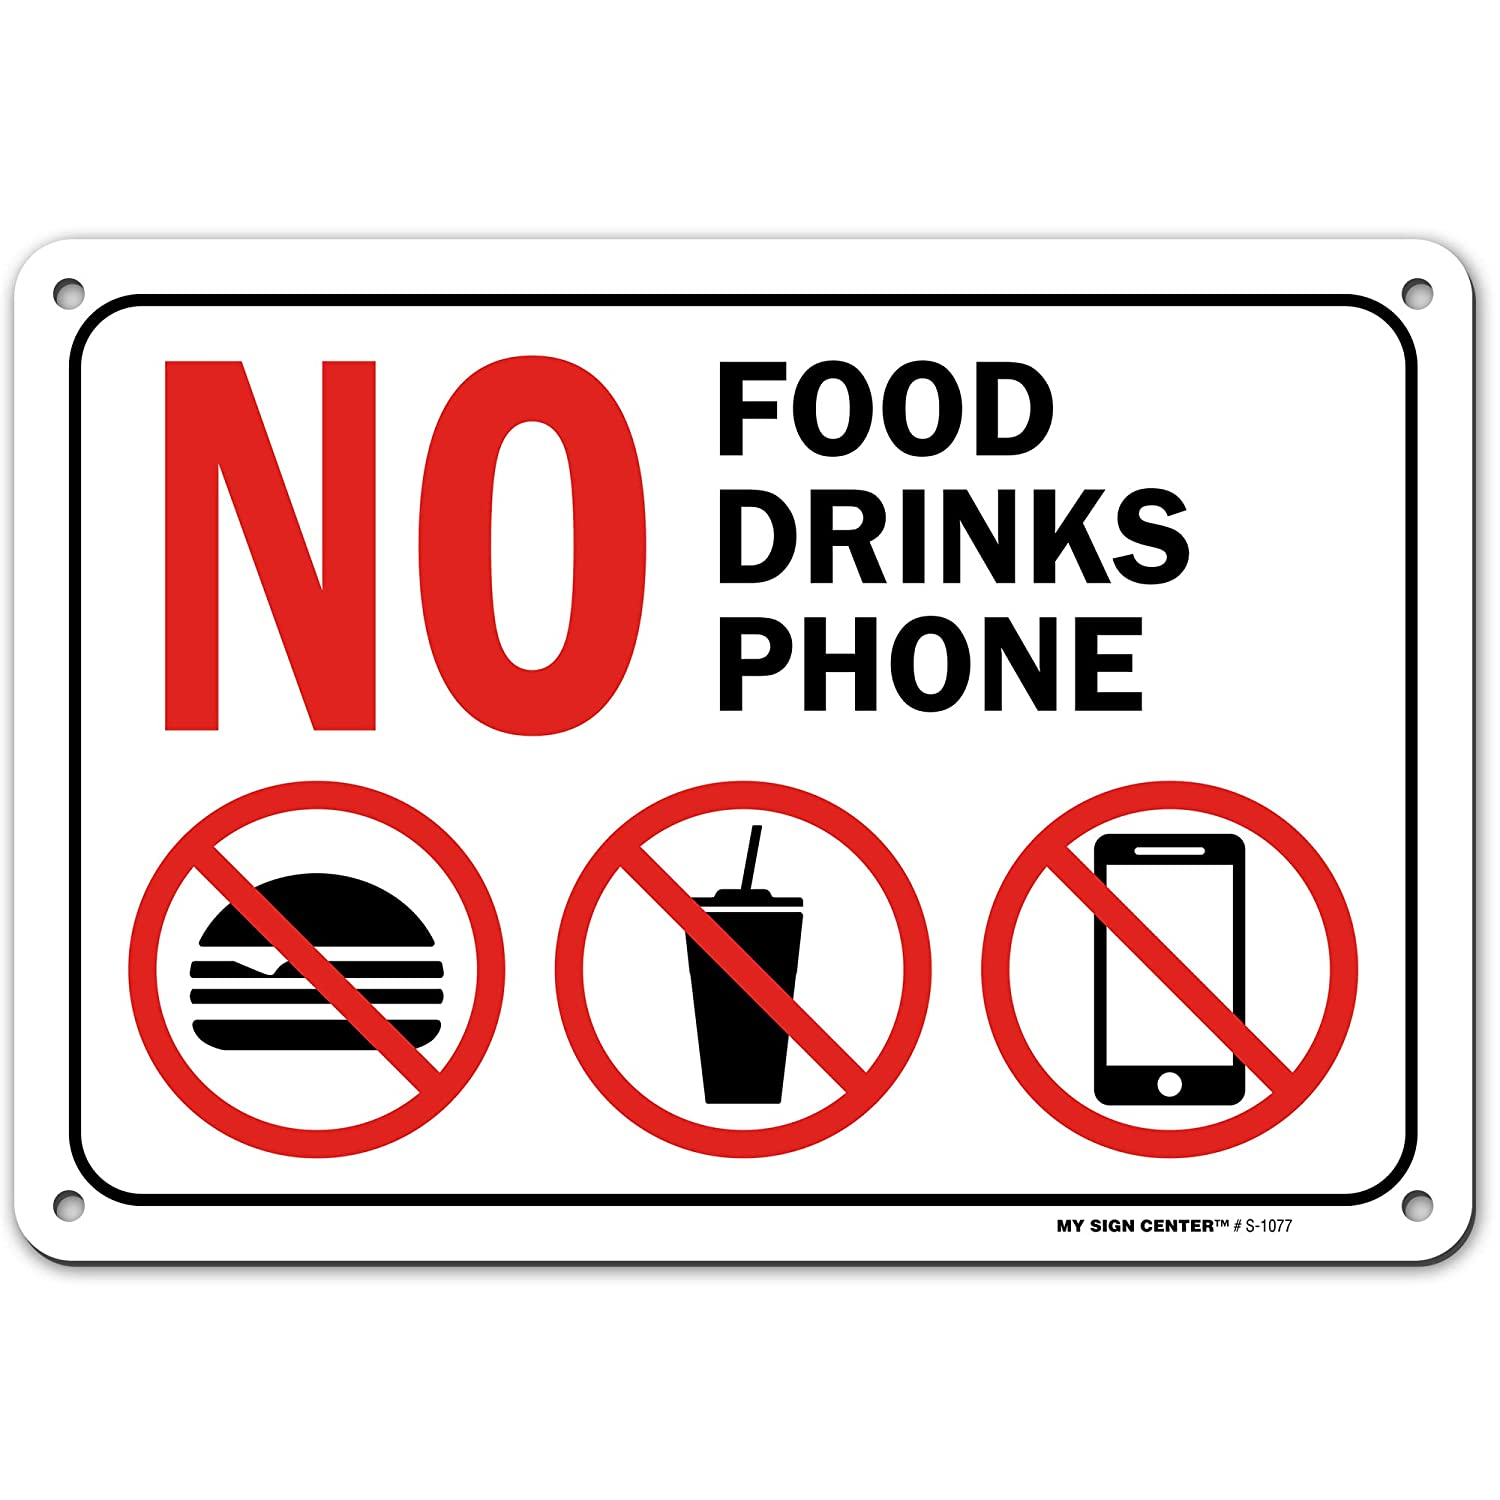 No Phones No Food or Drink Beyond This Point Sign, Made Out of .040 Rust-Free Aluminum, Indoor/Outdoor Use, UV Protected and Fade-Resistant, 7